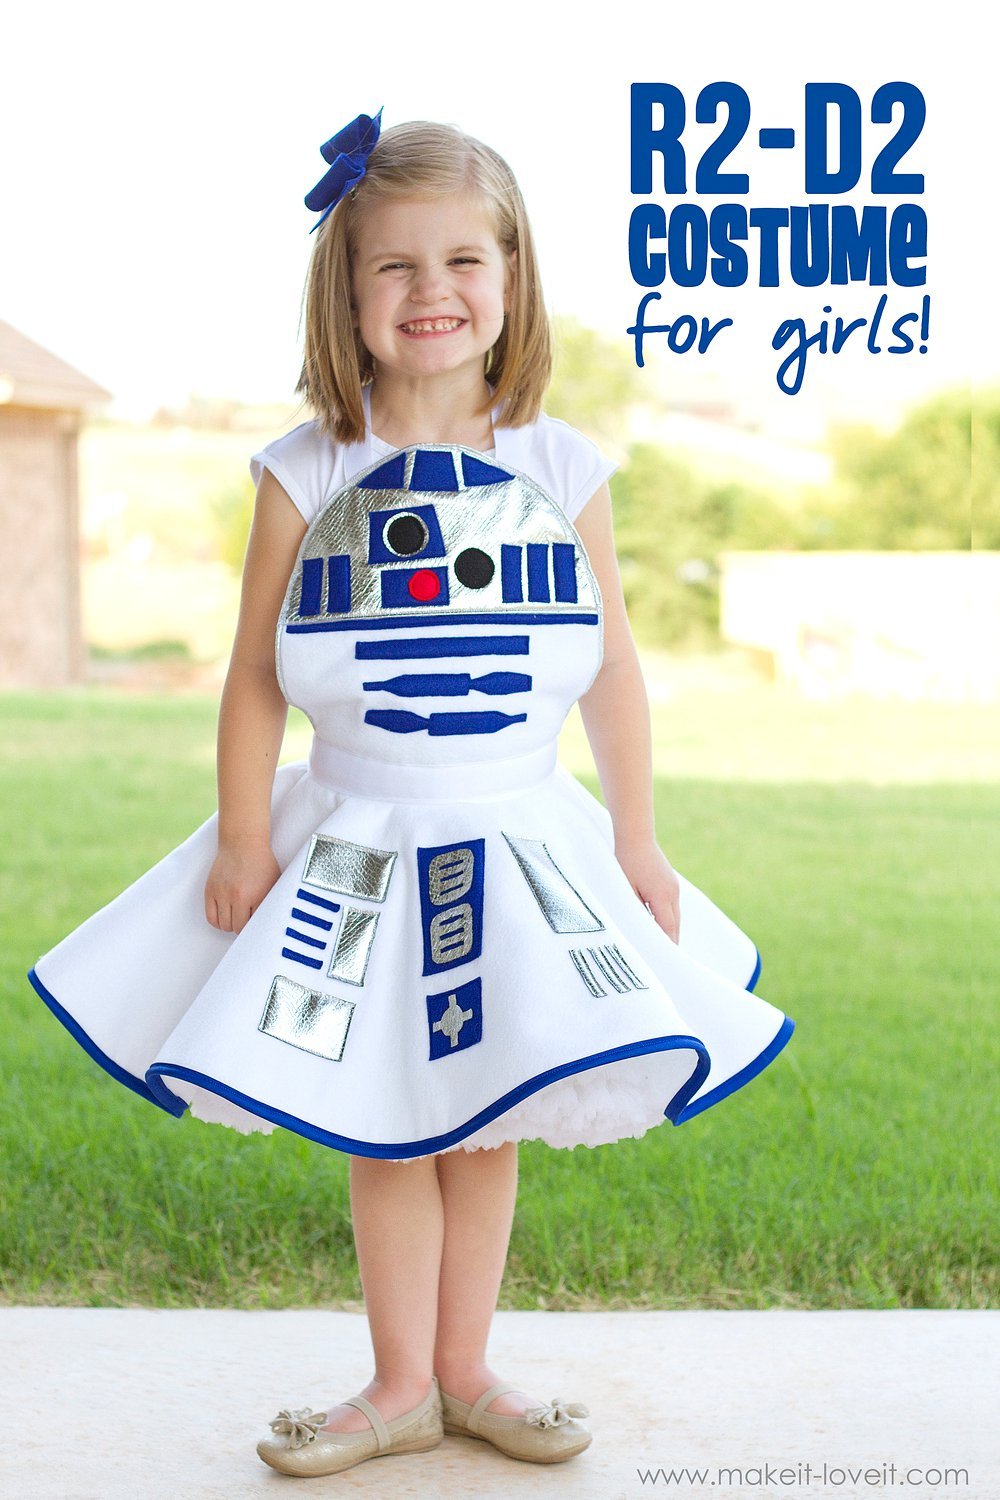 Star wars r2-d2 dress costume for girls…plus, one to give away!